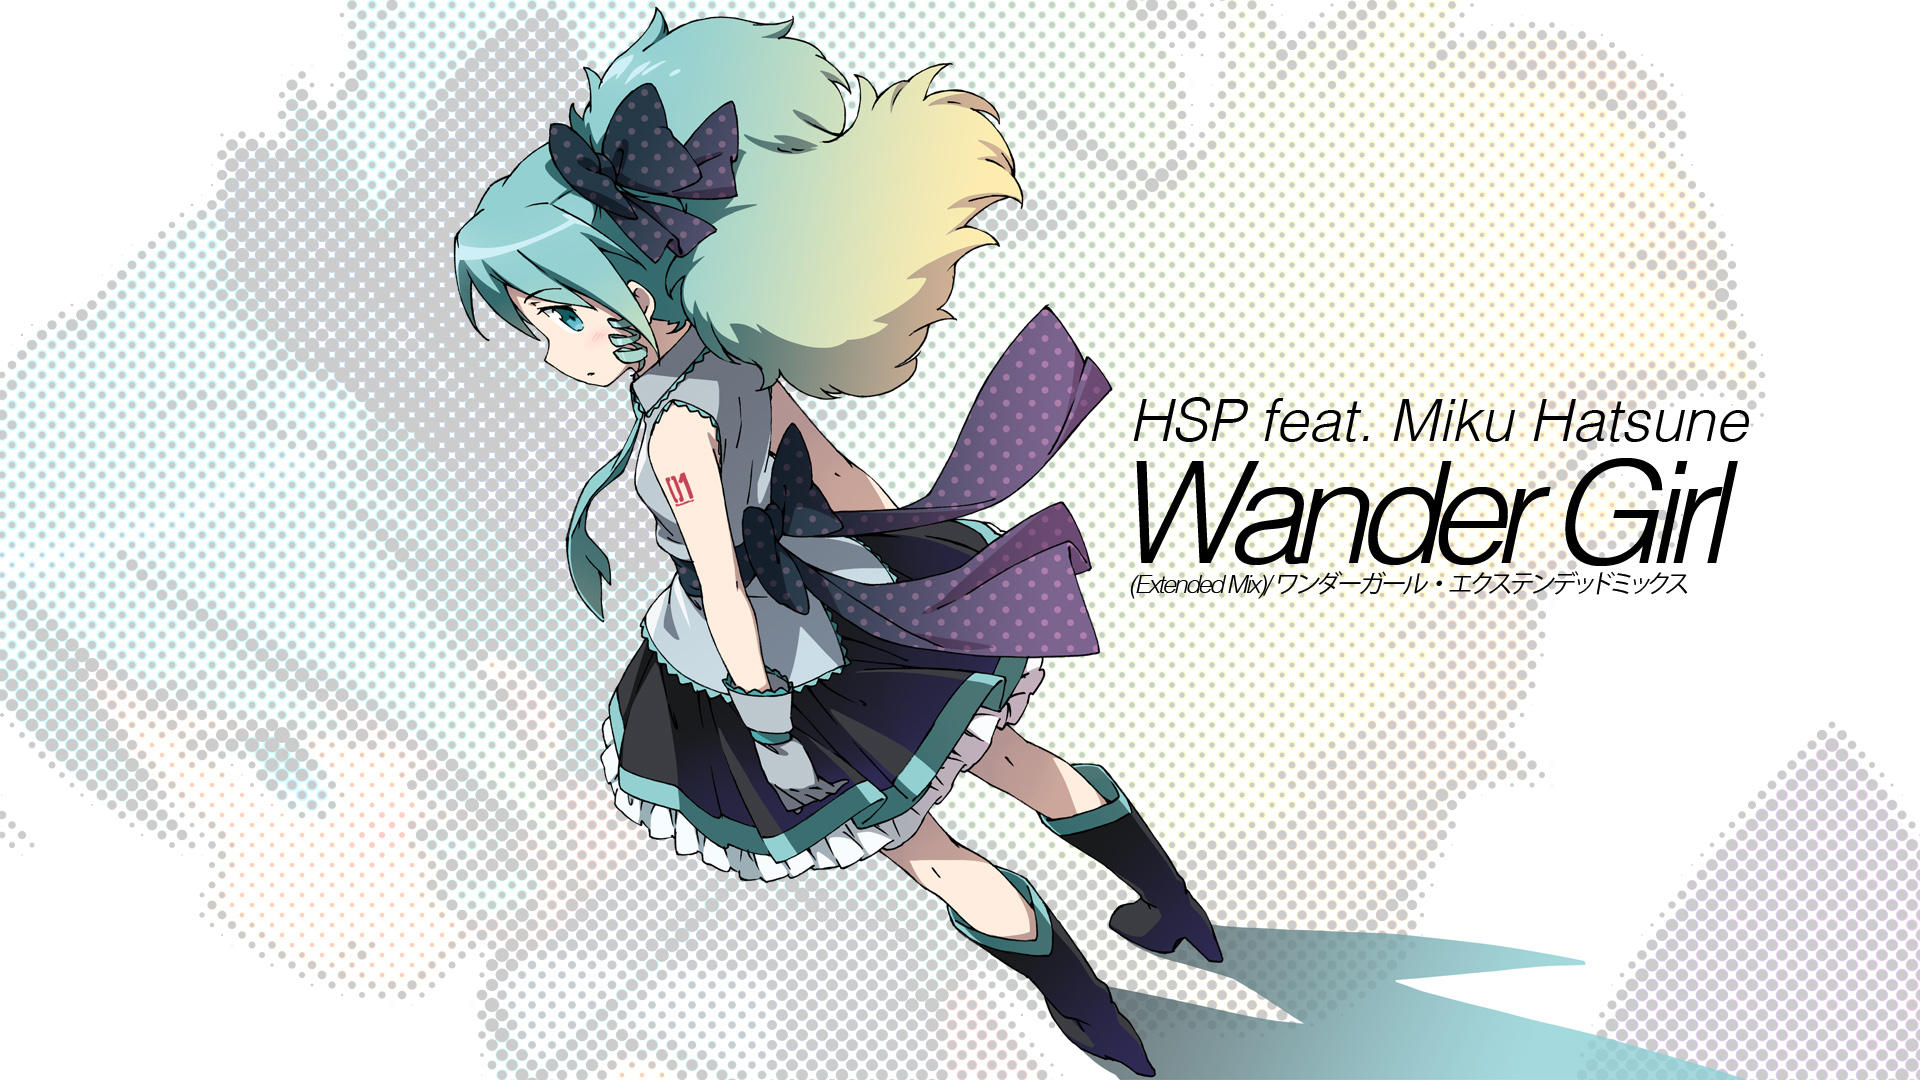 Wander Girl | Vocaloid Wiki | FANDOM powered by Wikia